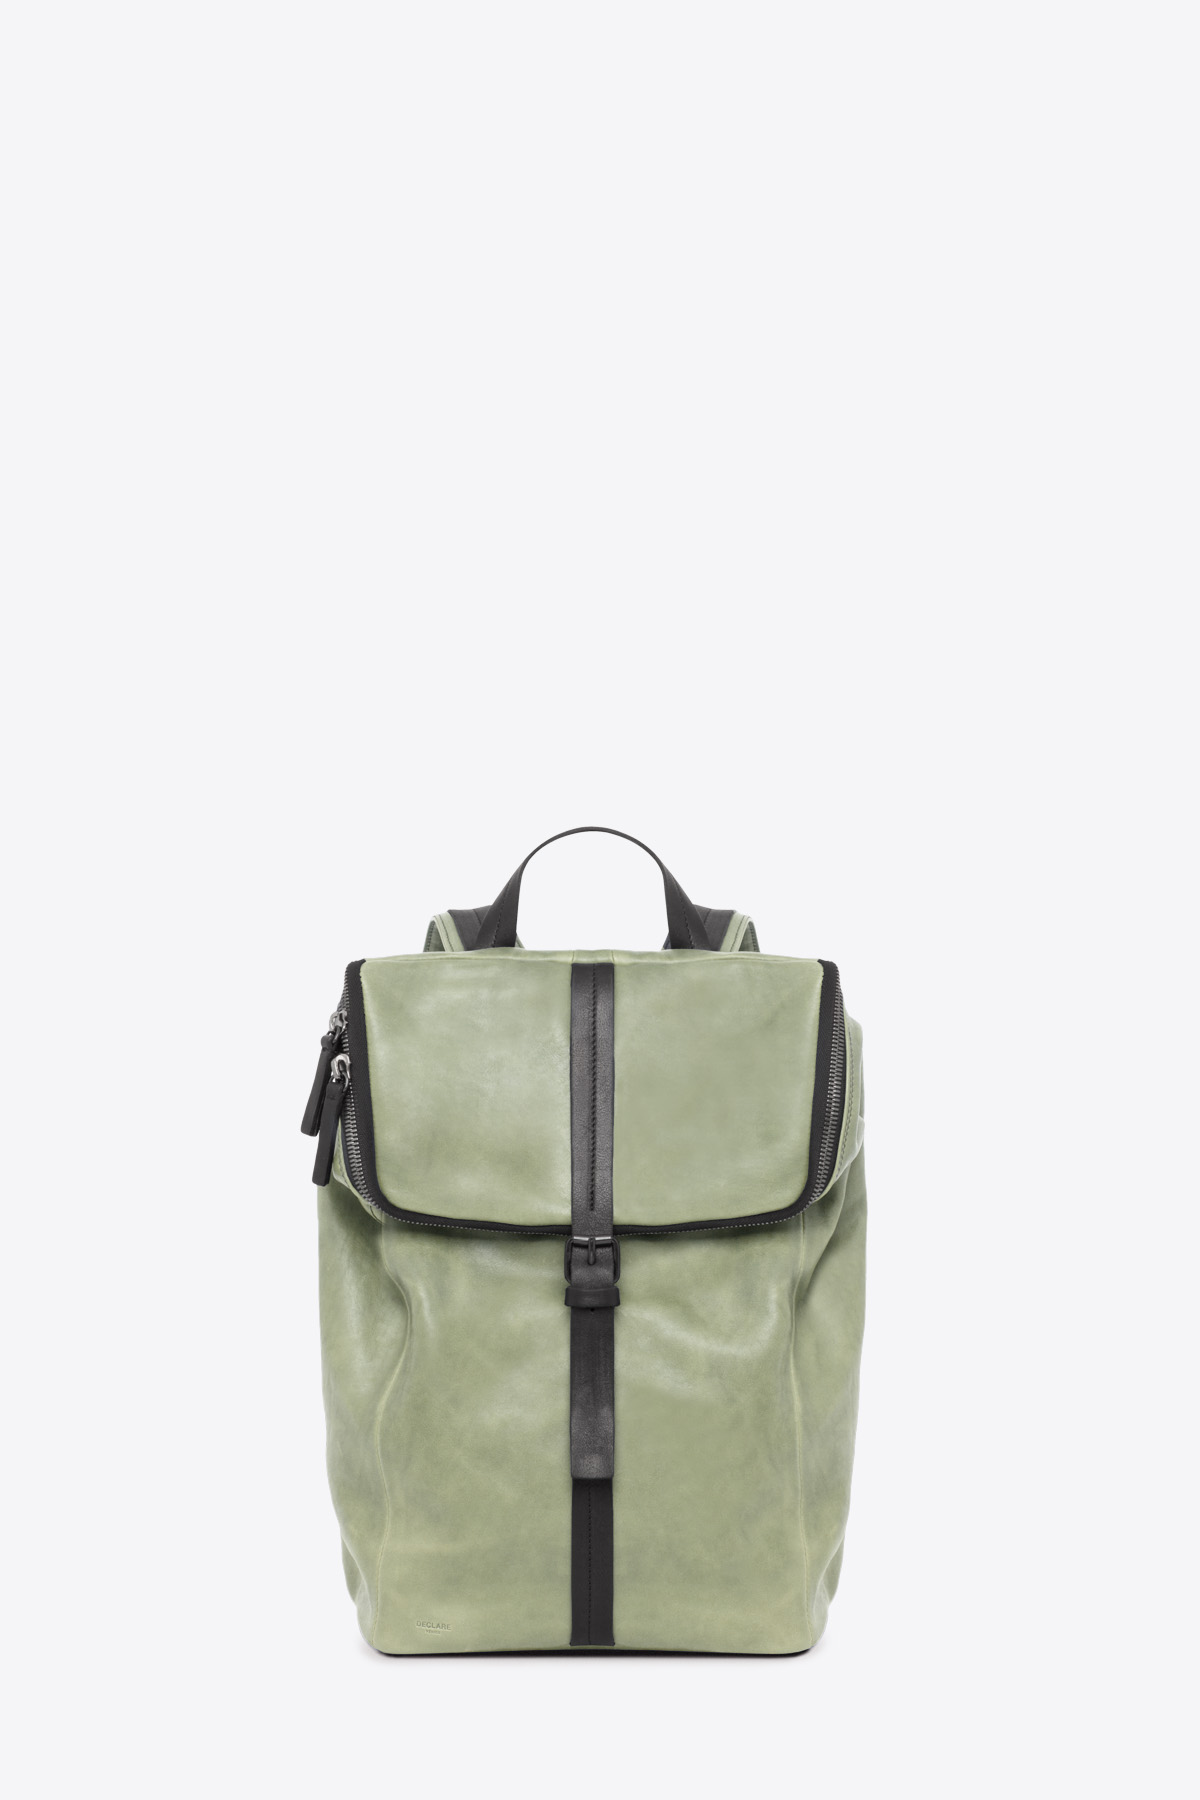 dclr011-backpack-a9-jadegreen-front